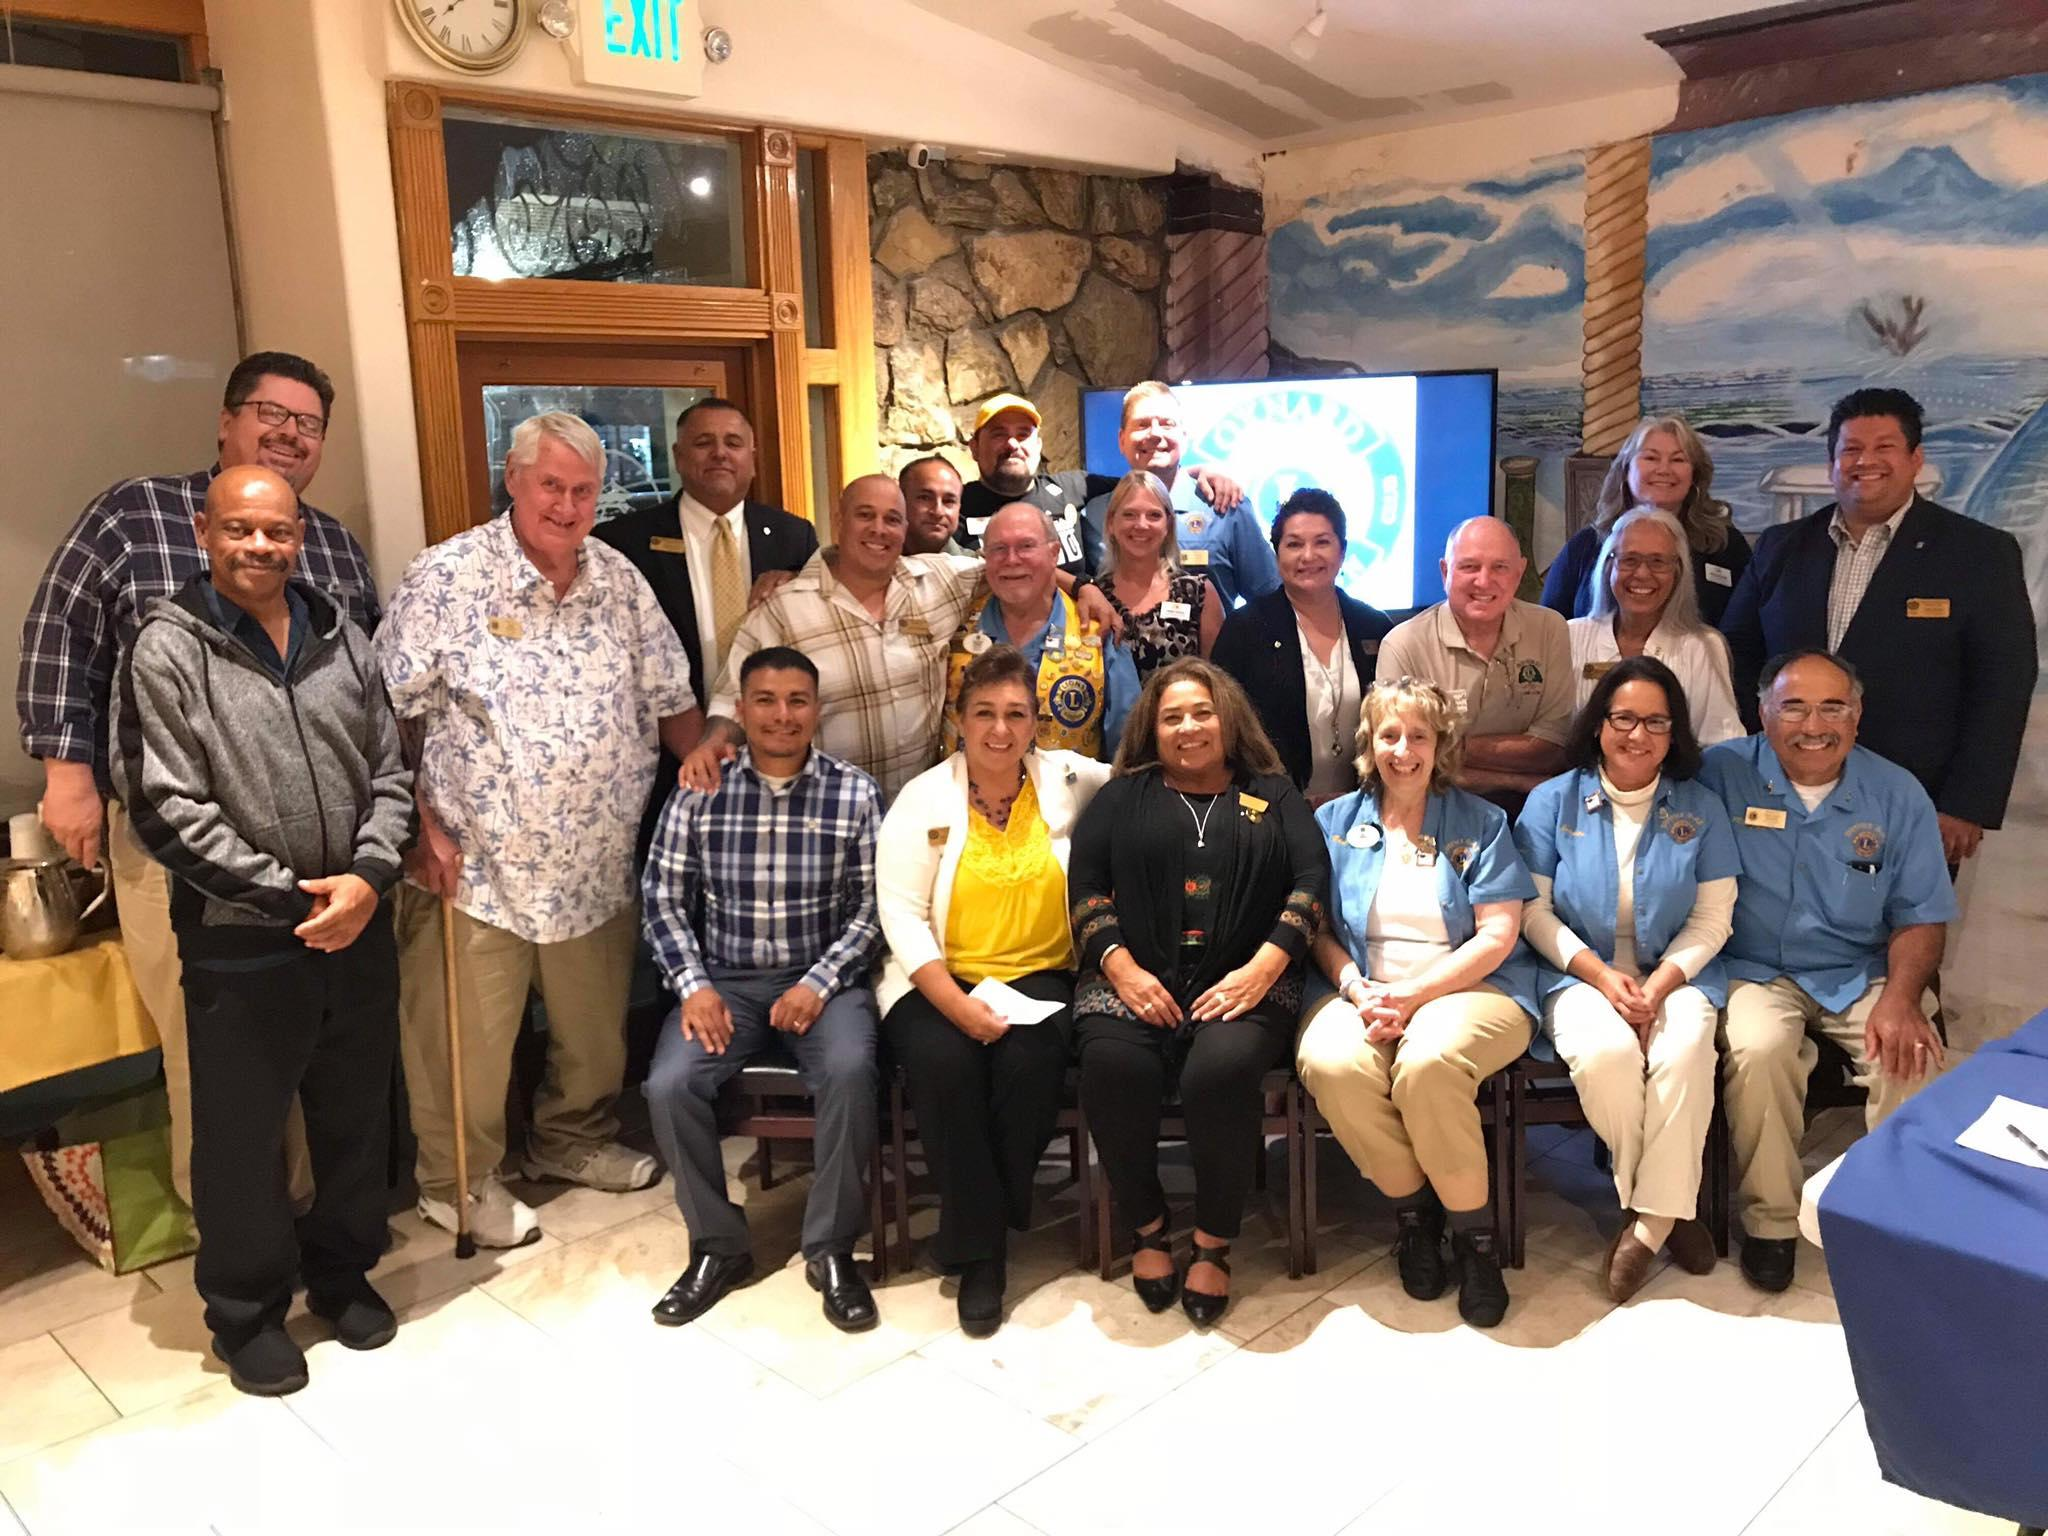 Ventura Downtown Lions Club image 13